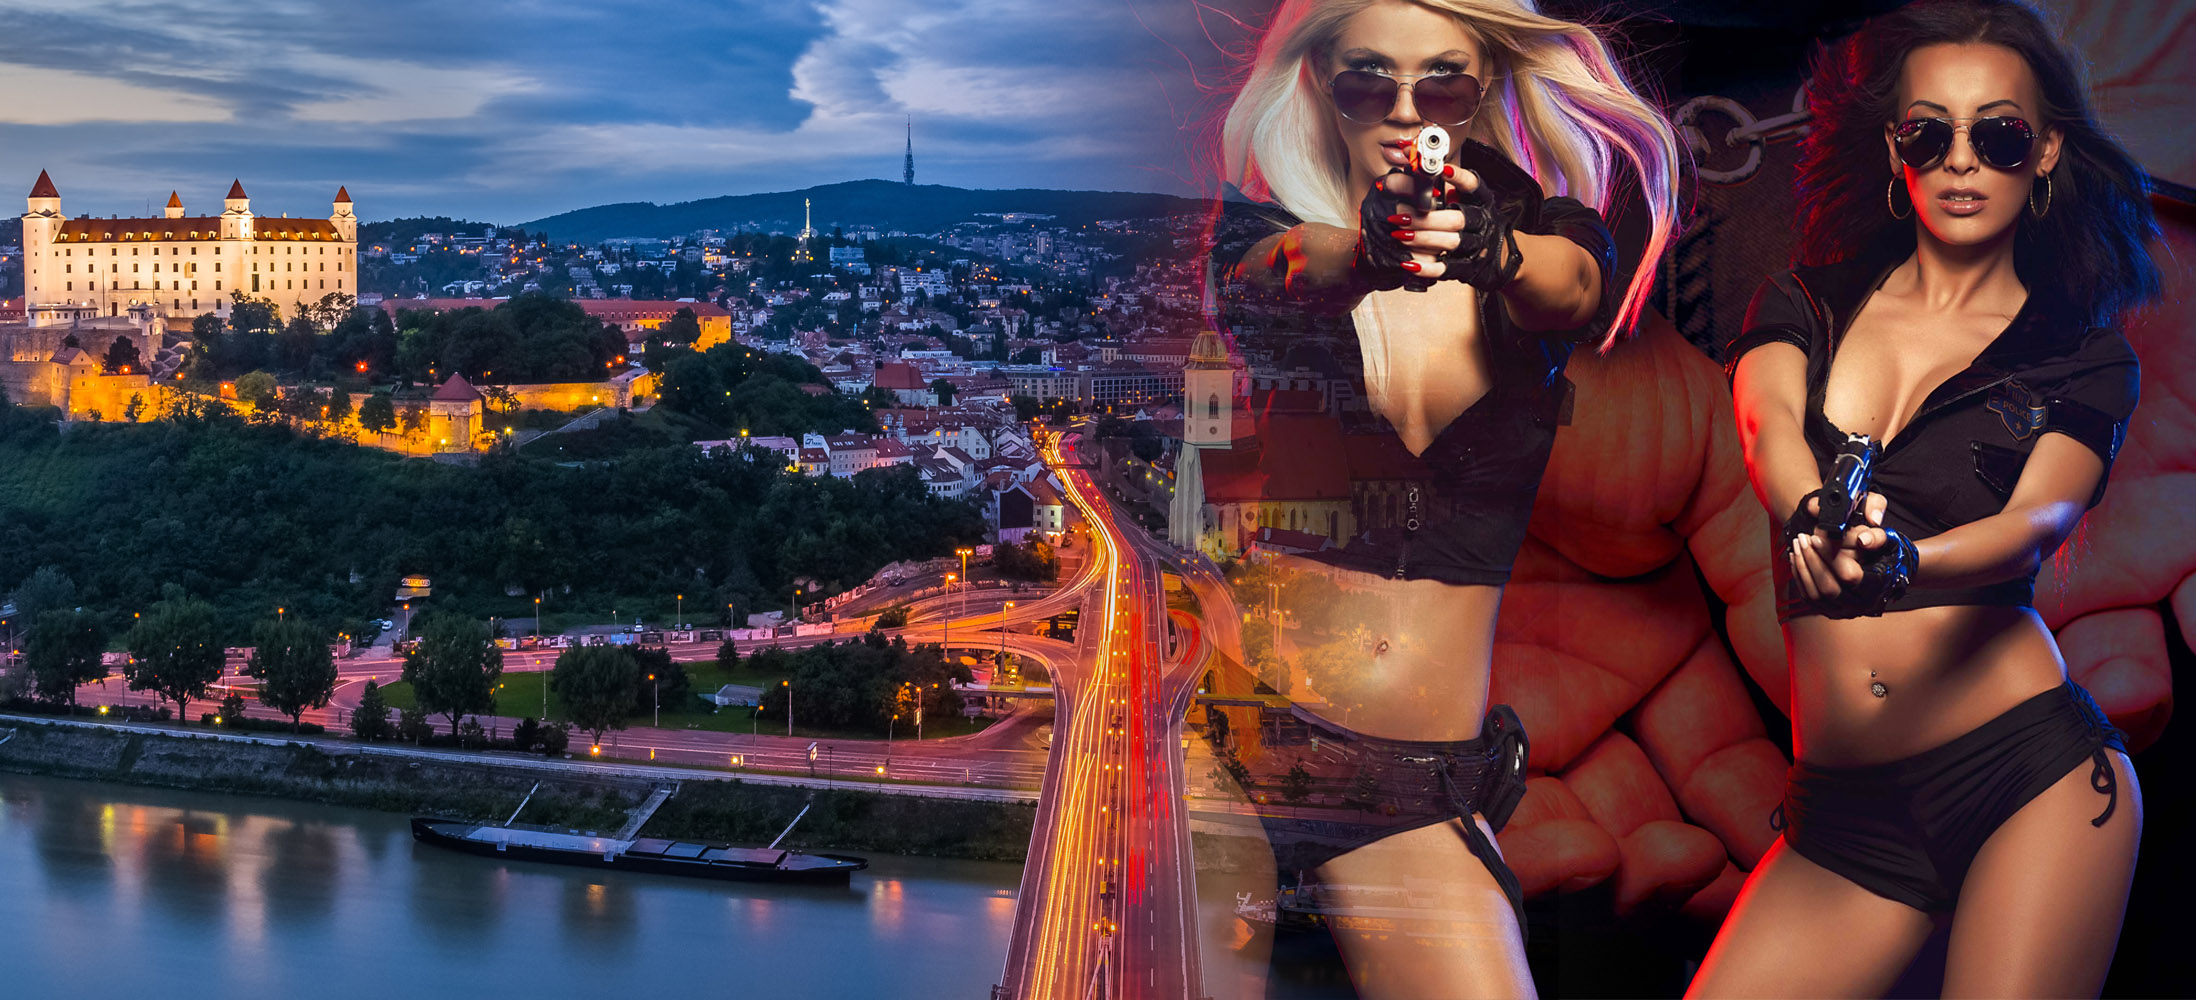 Best Places for Stag Do | Bratislava